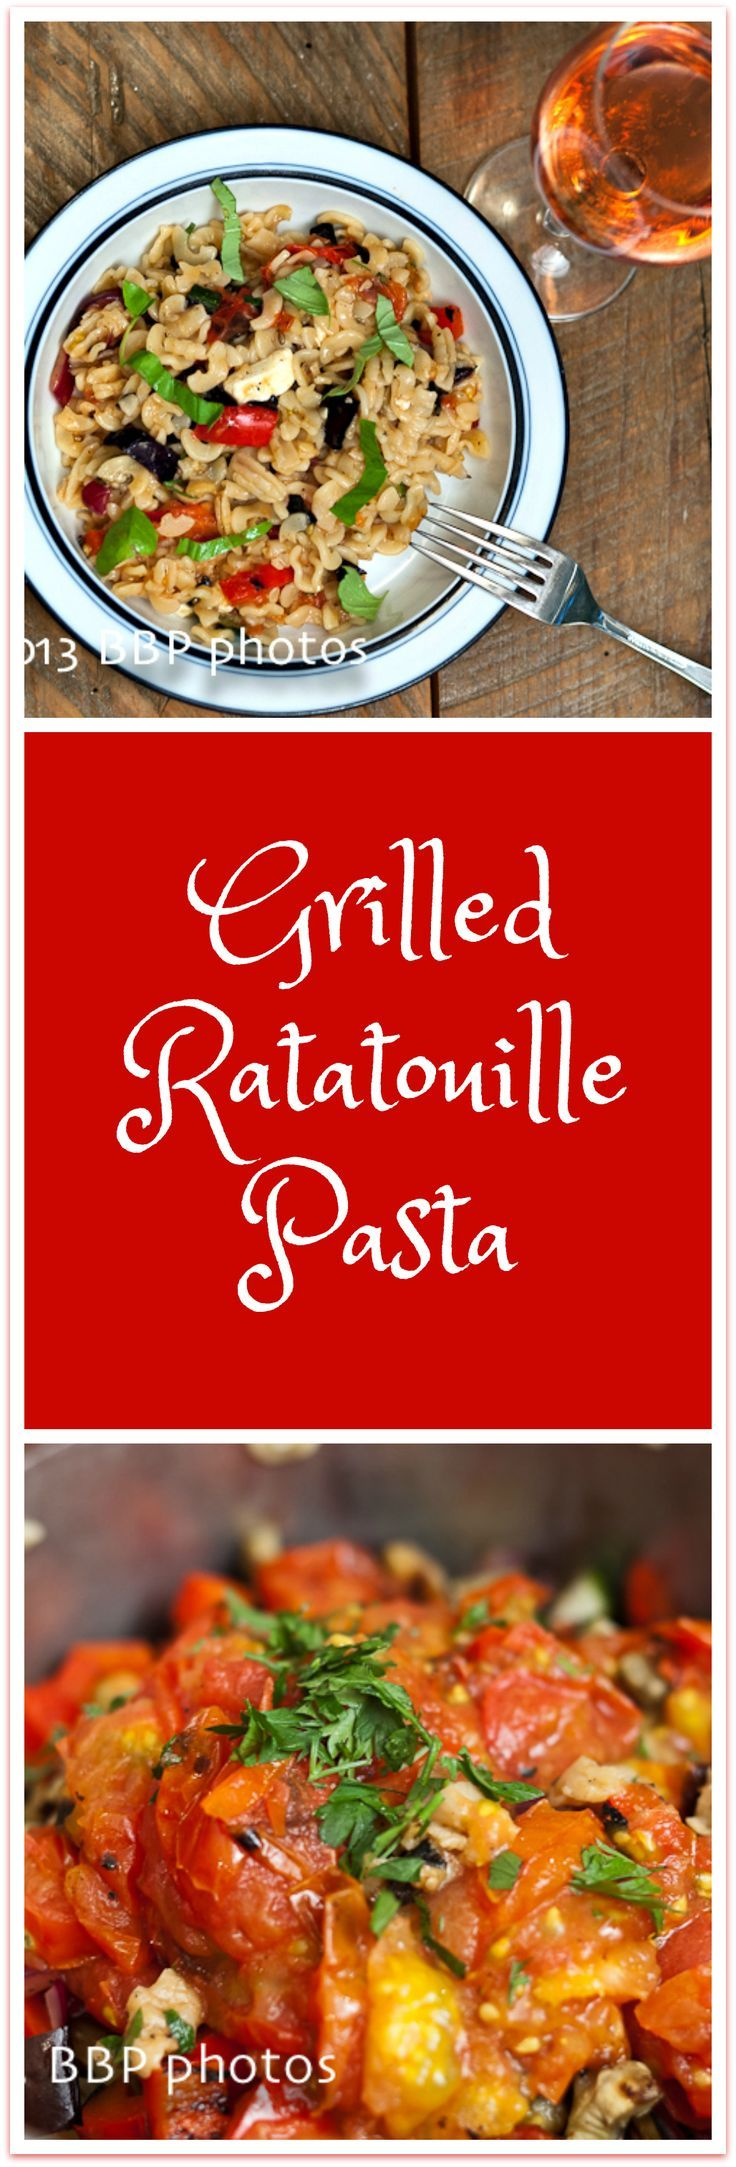 Grilled Ratatouille Pasta: All the flavors  of summer wrapped up in one quintessential dish.